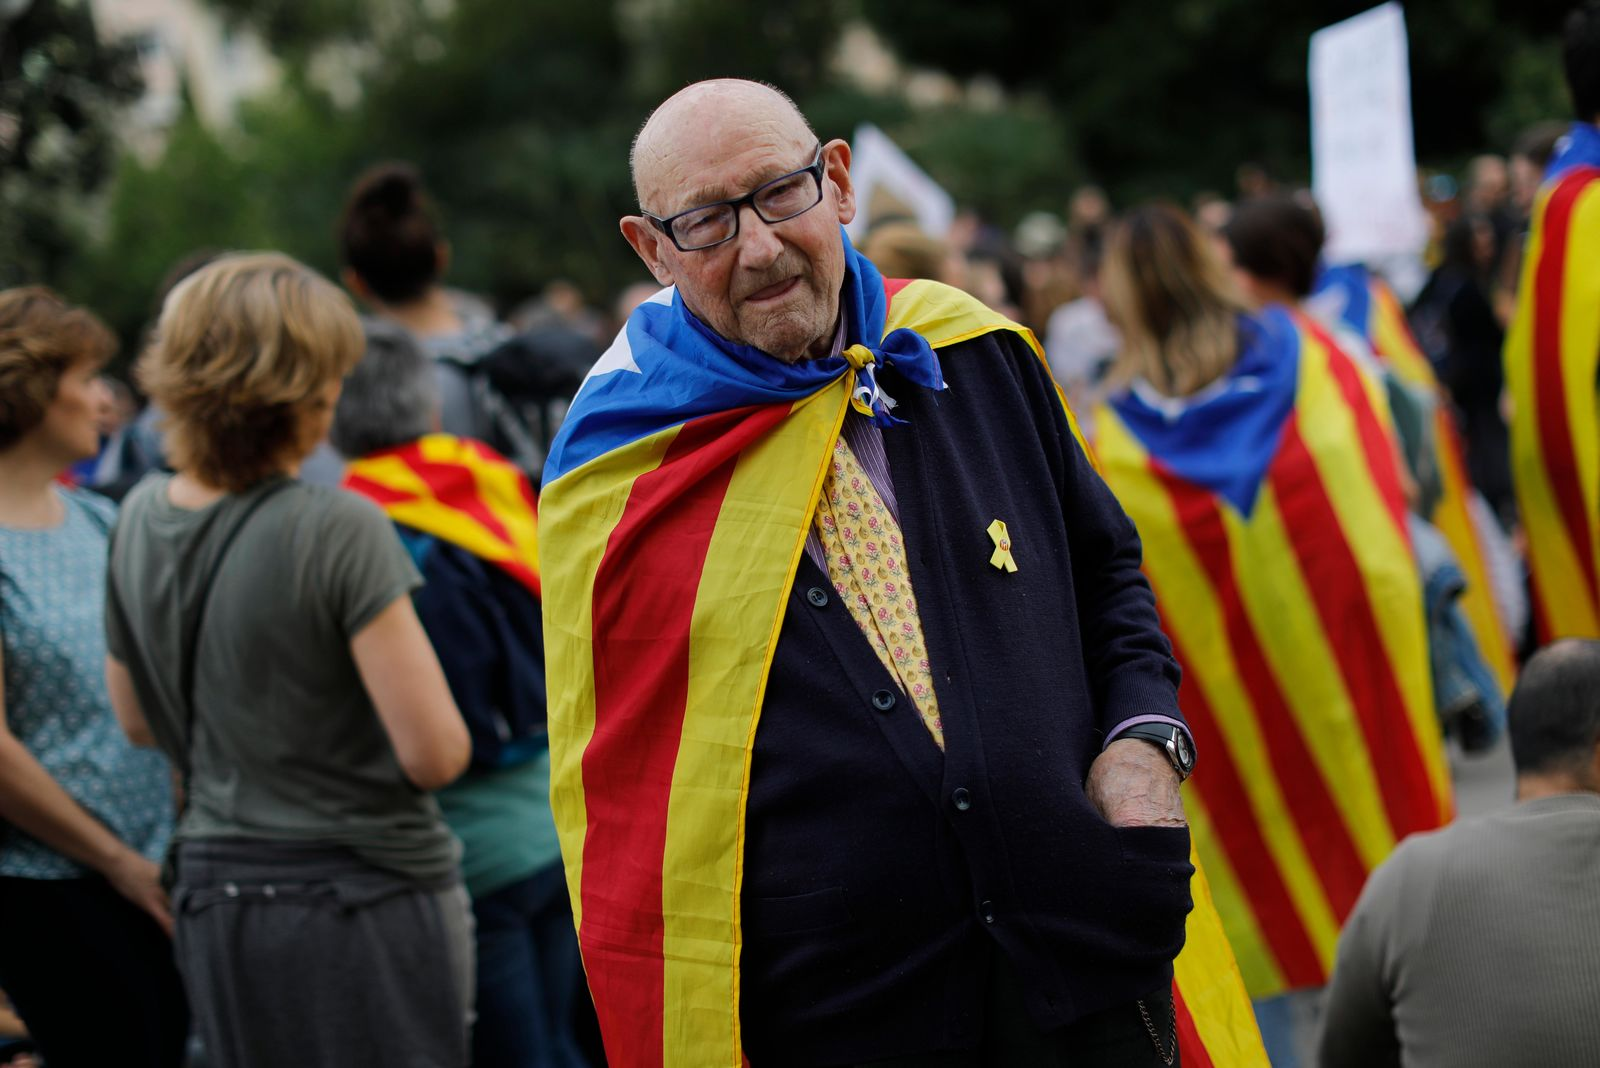 An elderly man joins a pro-independence gathering outside the Sagrada Família basilica i on the fifth day of protests over the conviction of a dozen Catalan independence leaders in Barcelona, Spain, Friday, Oct. 18, 2019.{ } (AP Photo/Bernat Armangue)